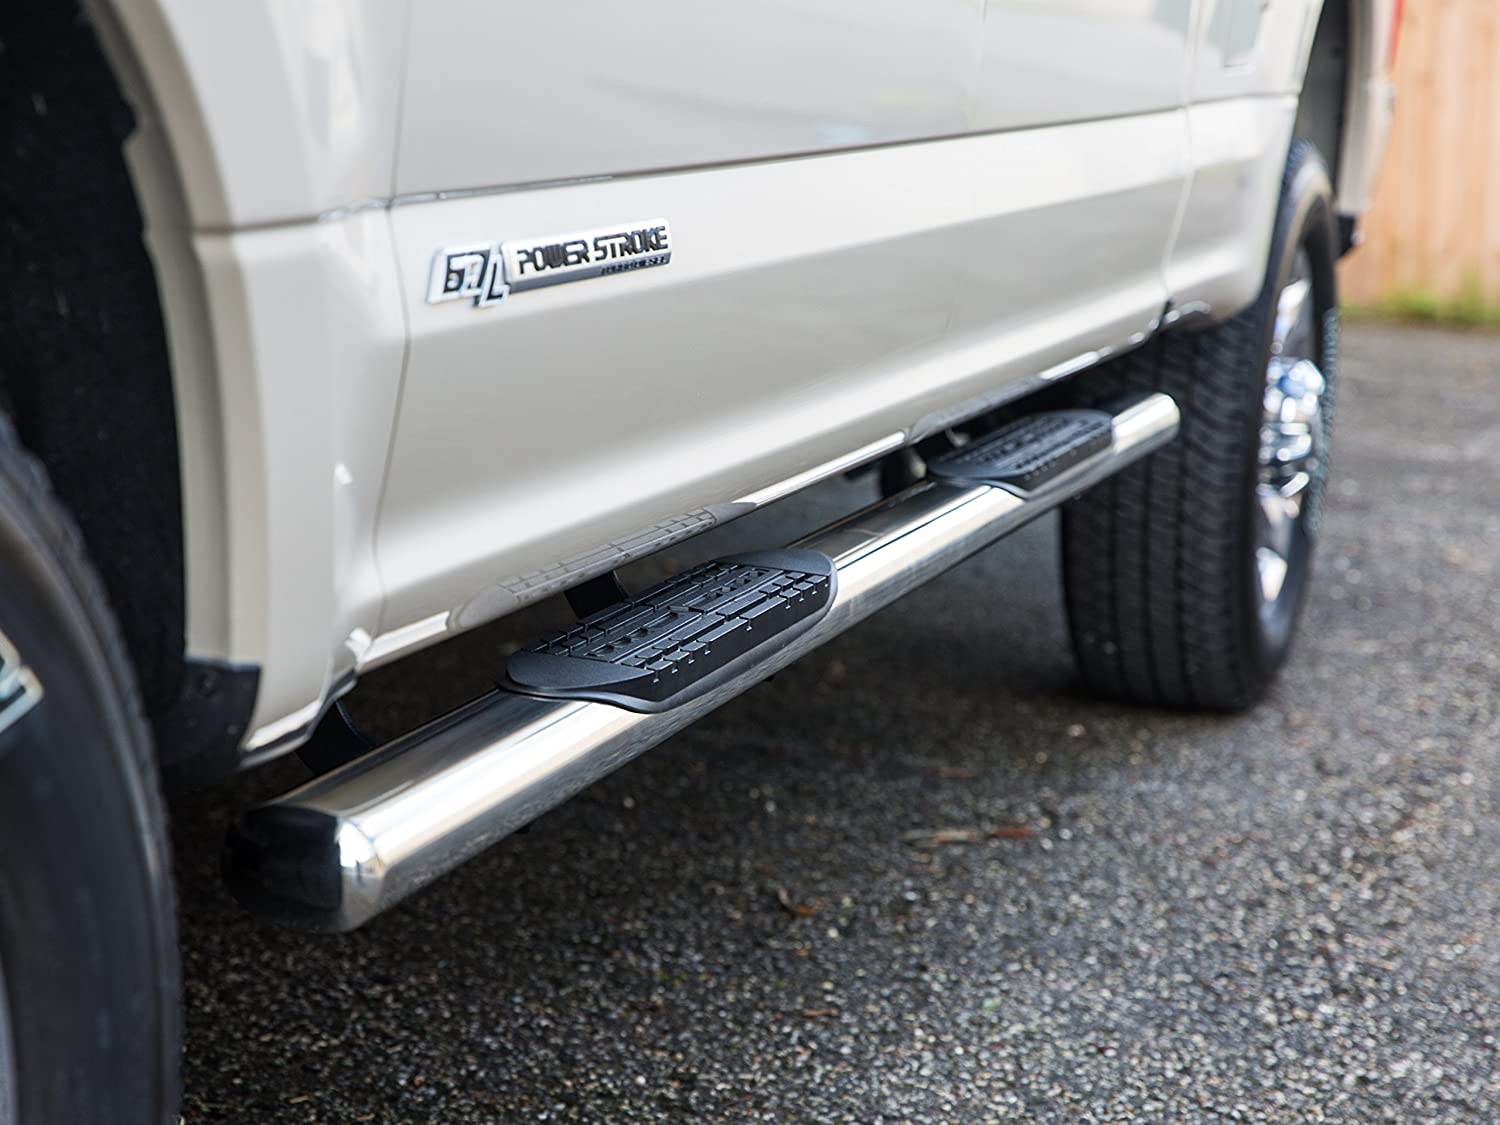 2009-2018 Dodge Ram Quad Cab 1500 Only Nerf Bars Truck Side Steps Ionic Pro Series 3 Stainless 3320200 fits